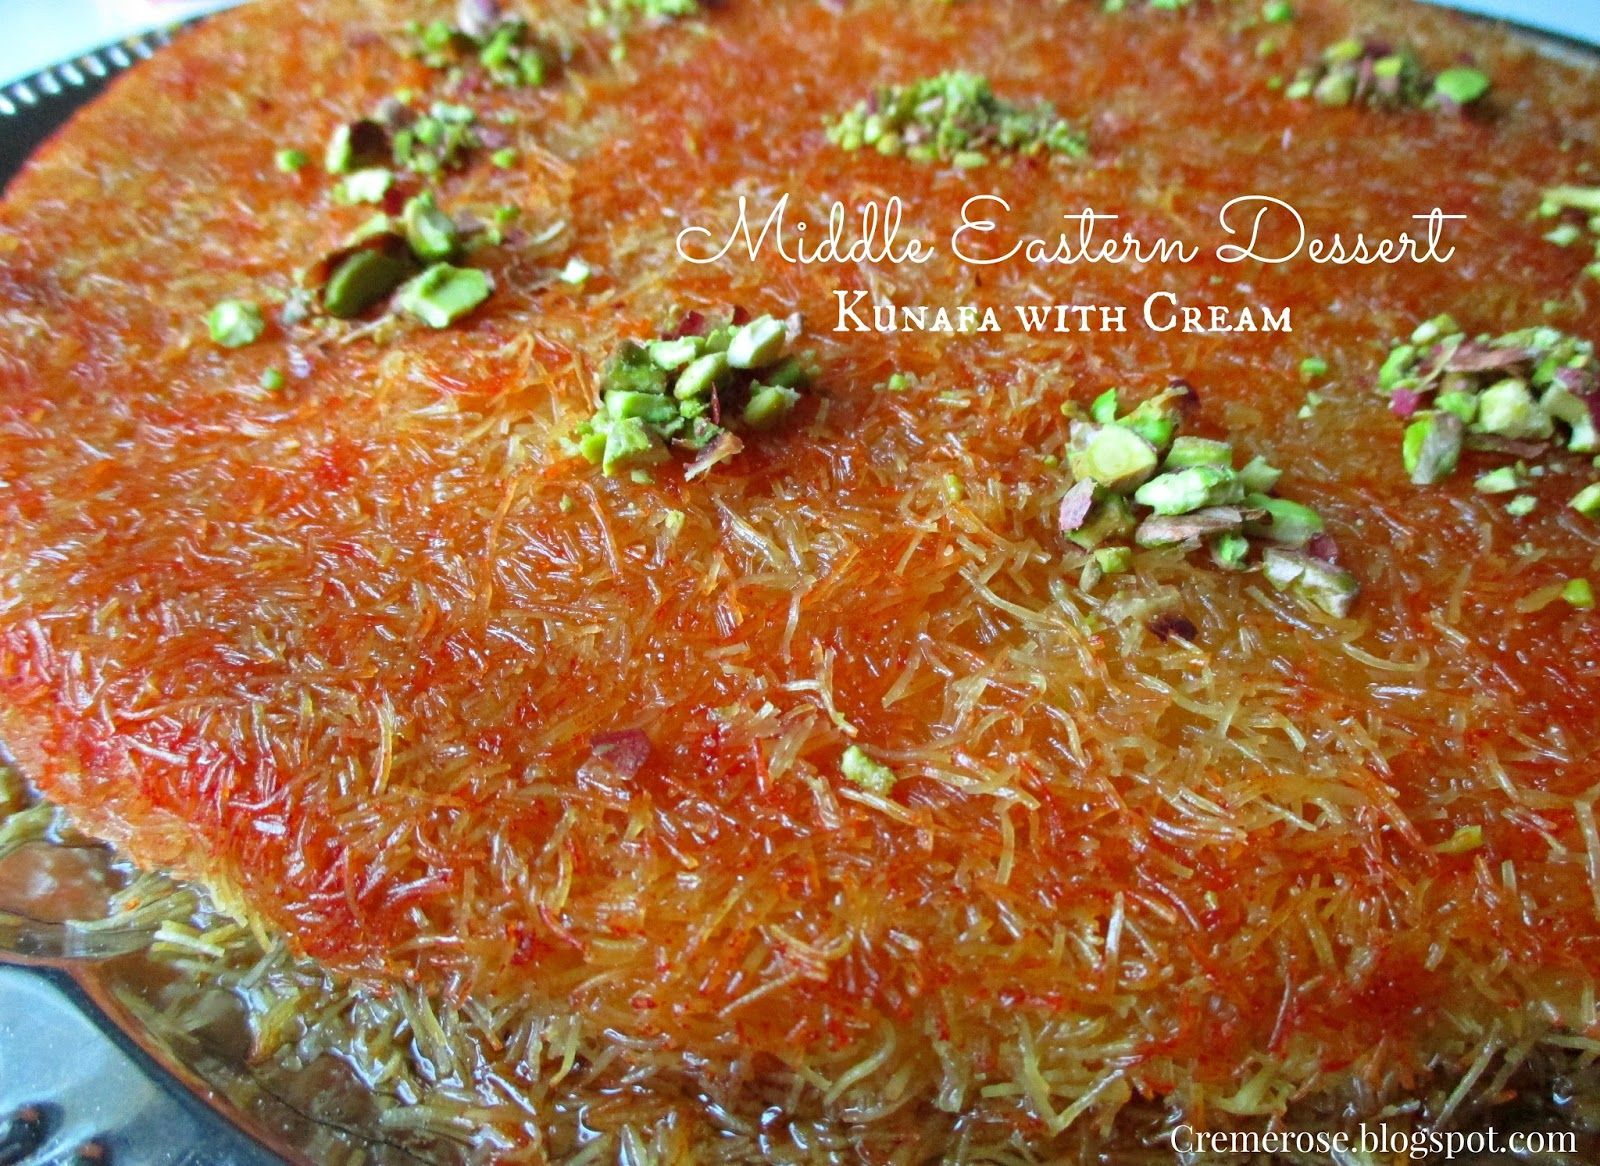 Happy Tuesday!     Today's post is a recipe of one of my favorite Middle Eastern Dessert: Kunafa with Cream. This dessert looks comp...